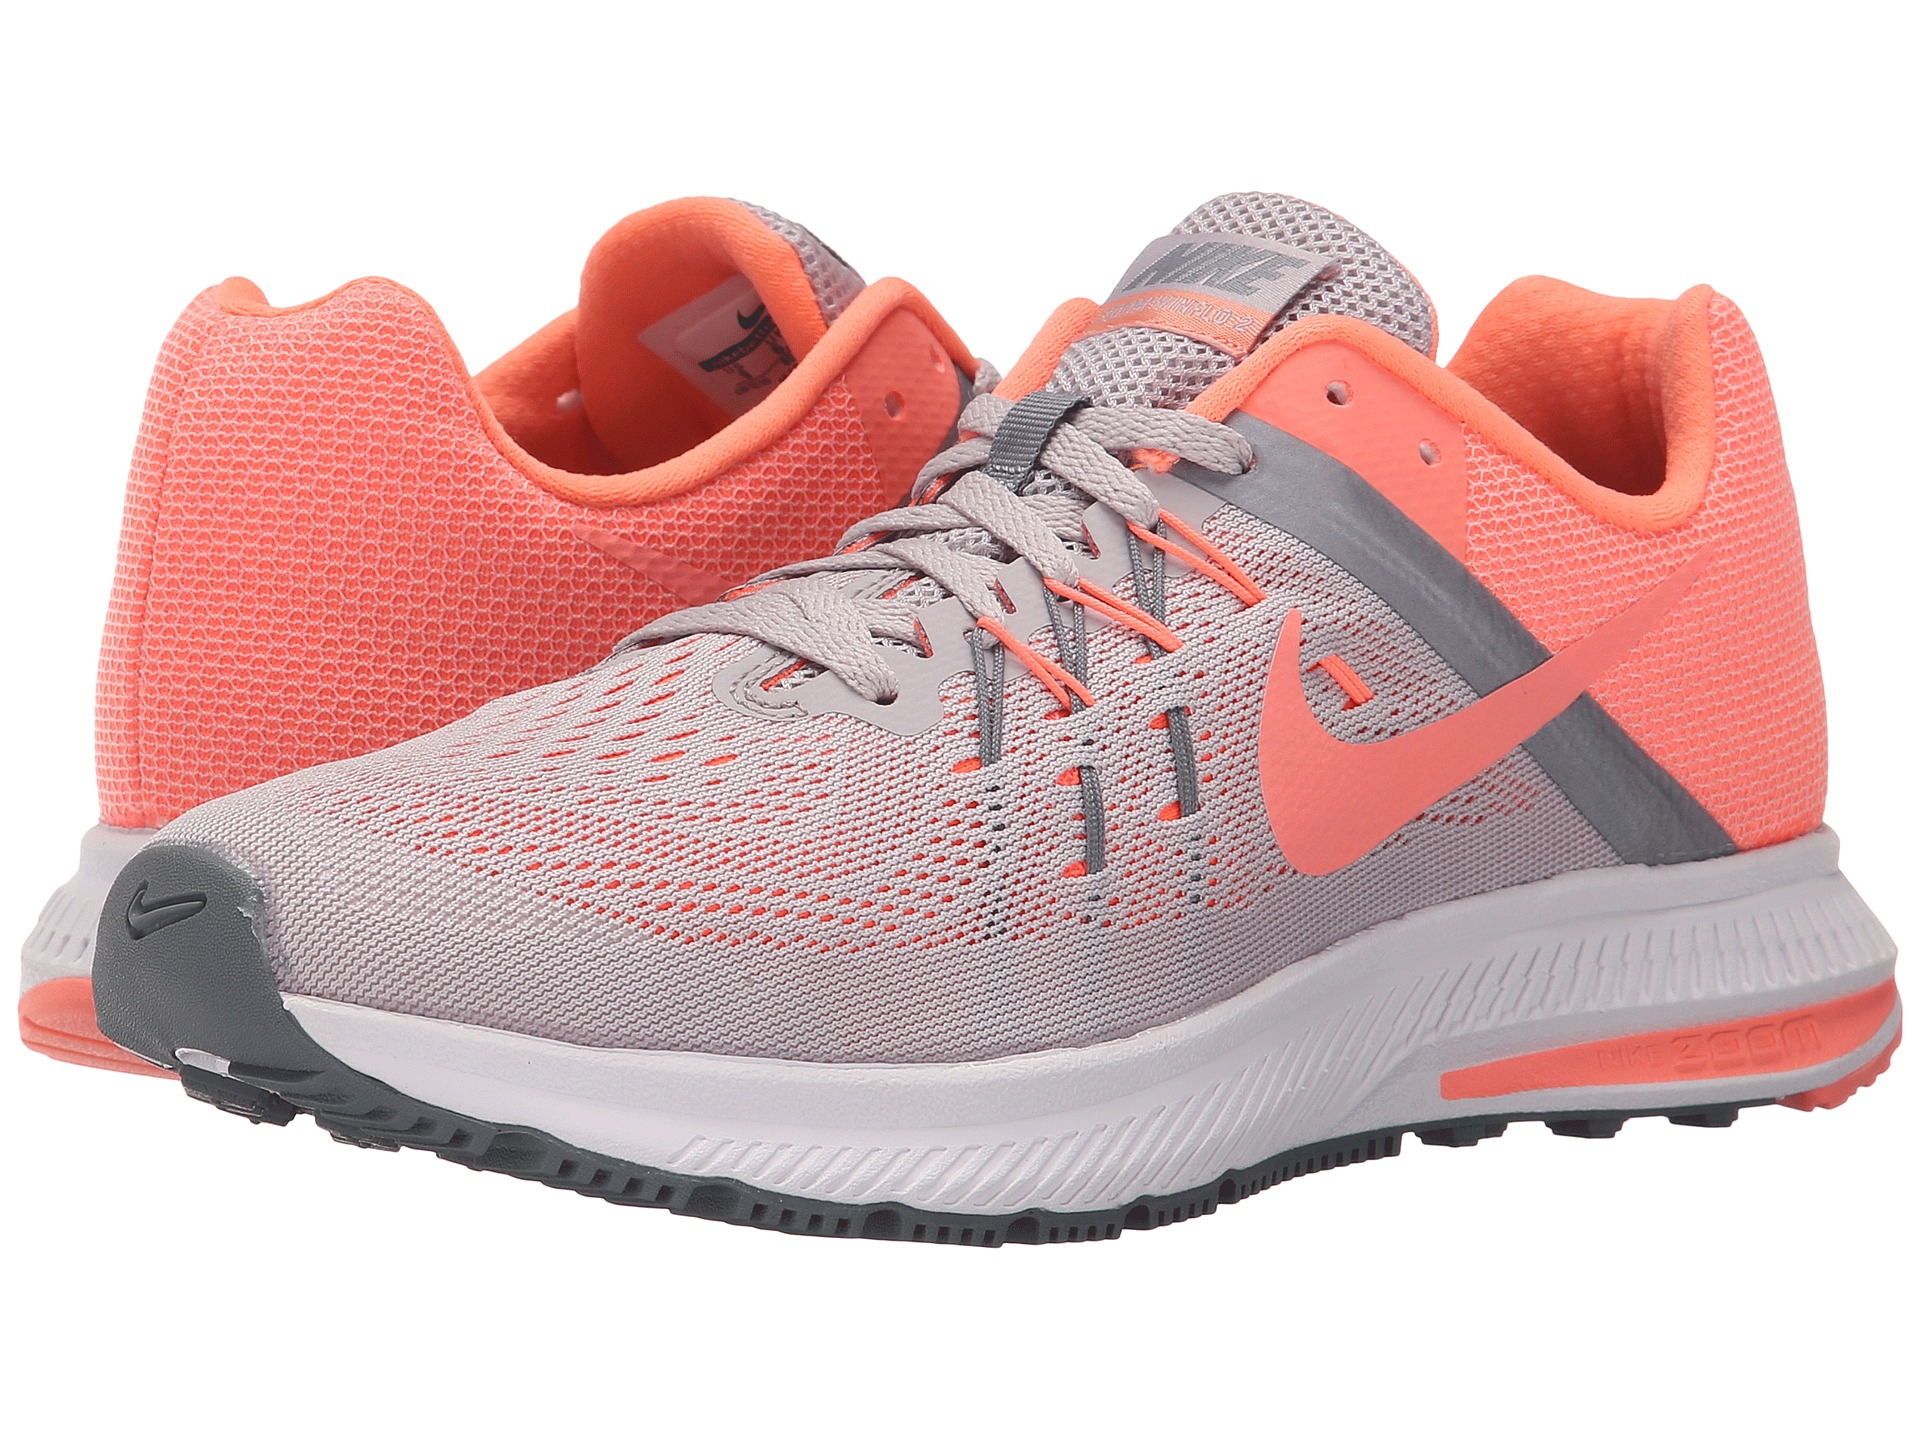 online retailer 8d988 c0670 ... germany lyst nike zoom winflo 2 in pink 013bd f437a